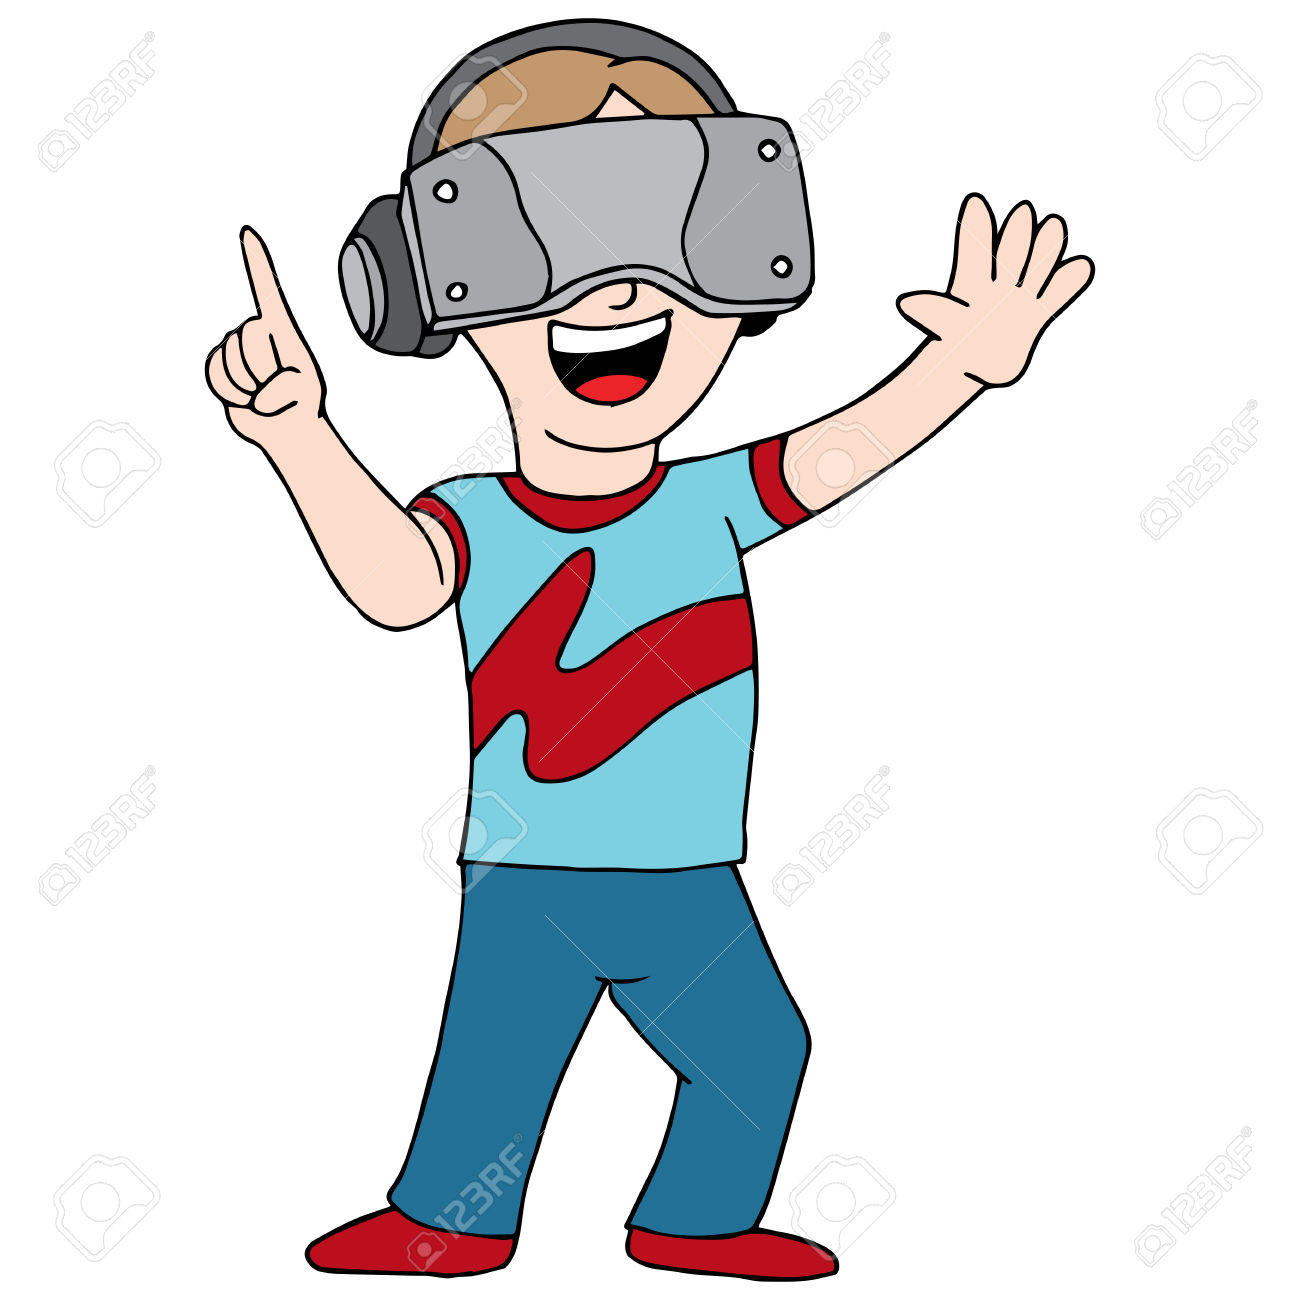 Virtual world clipart clip royalty free download Collection of Virtual reality clipart | Free download best ... clip royalty free download